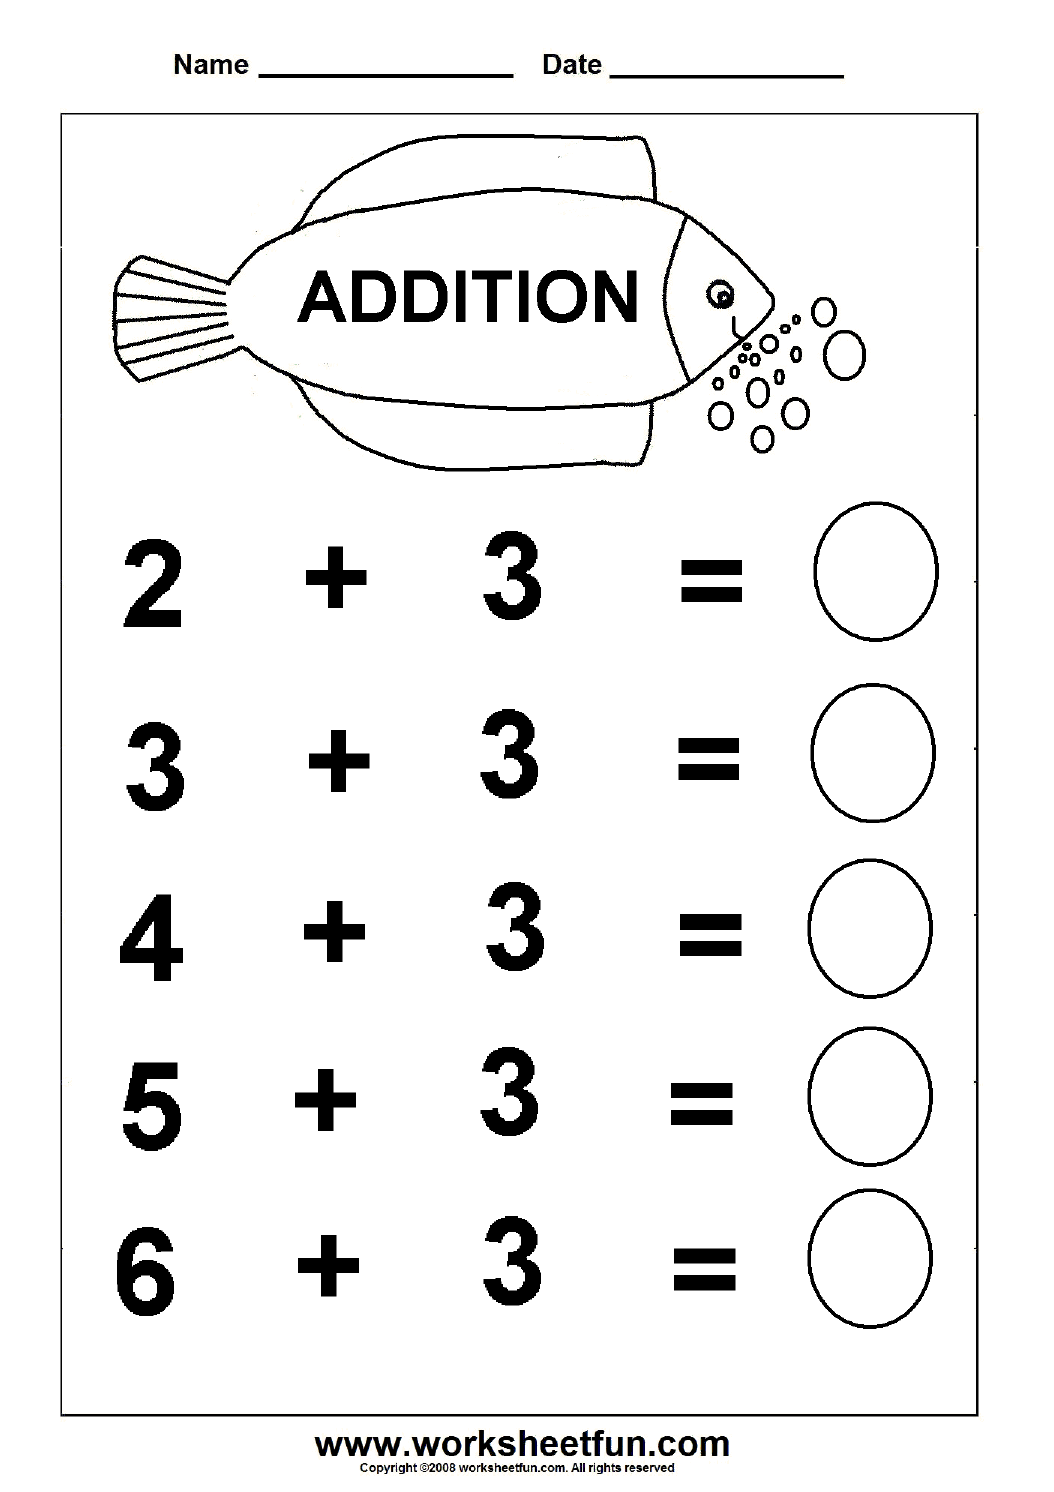 Uncategorized Basic Addition And Subtraction Worksheets beginner addition 6 kindergarten worksheets free subtraction worksheets